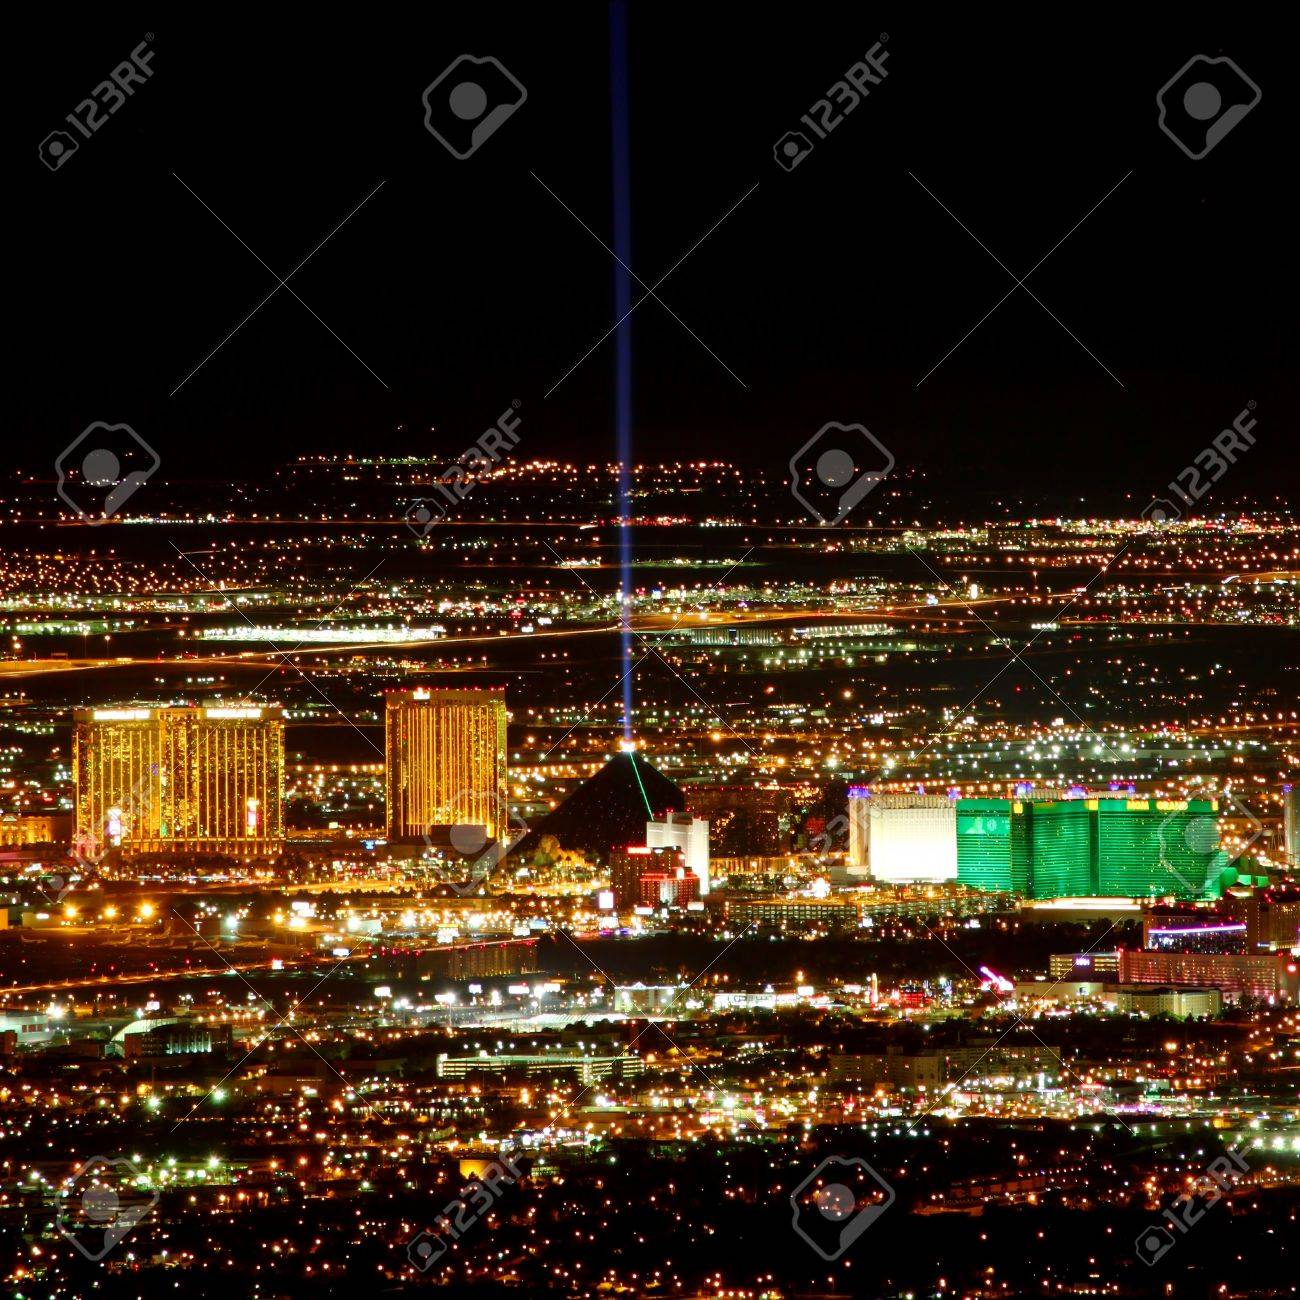 Las Vegas, USA - November 26, 2011: Bright lights of hotels and casinos at the south end of the Las Vegas Strip. The Strip is about 4 miles long and is seen here from the Frenchman Mountain summit. Stock Photo - 16285718